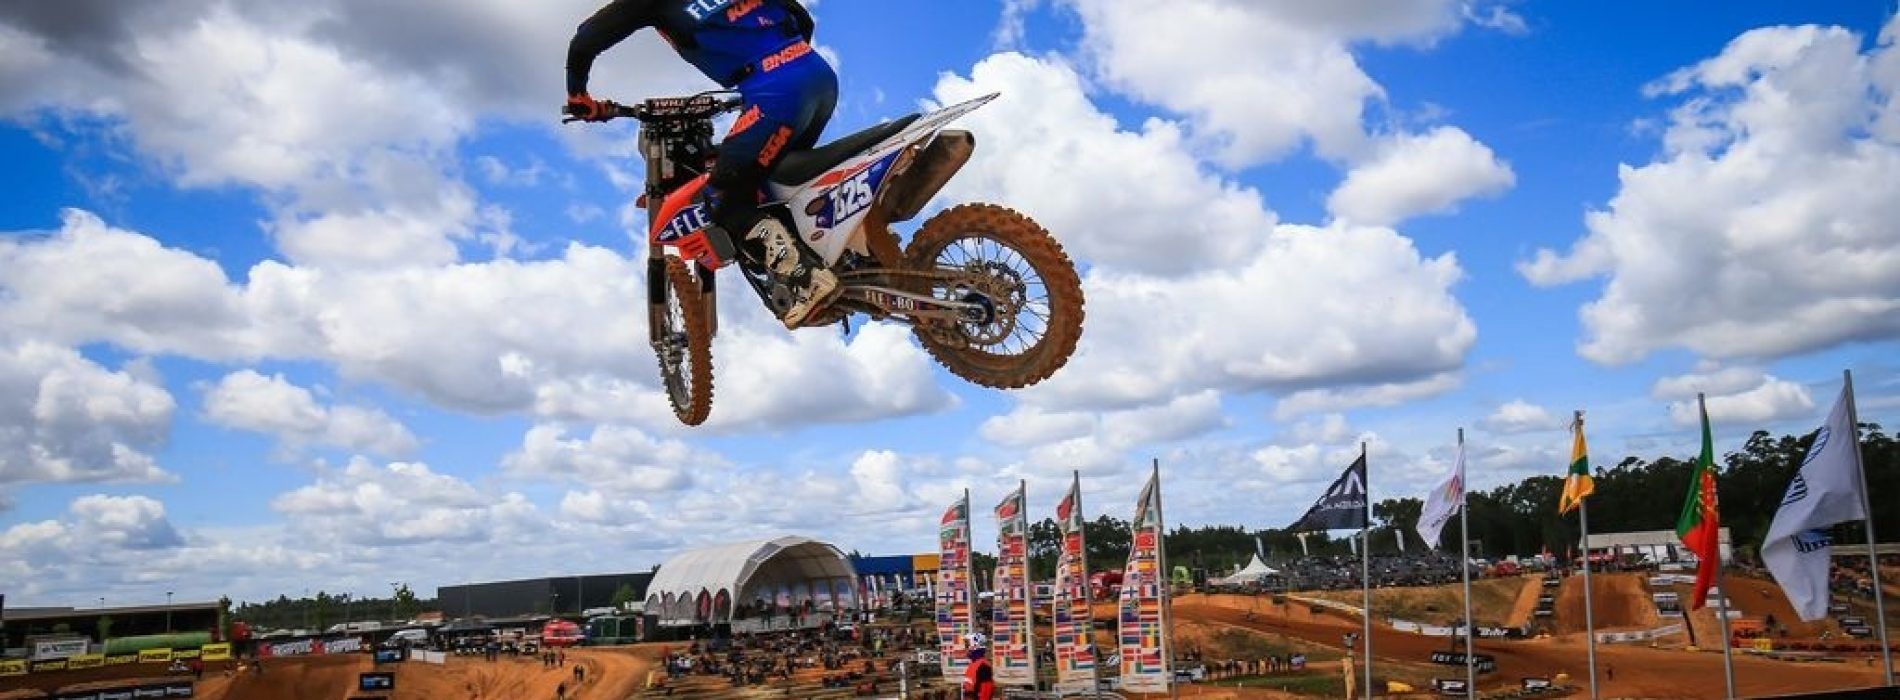 Sara Andersen gains confidence going 5-4 in WMX Round 2 at MXGP of Portugal